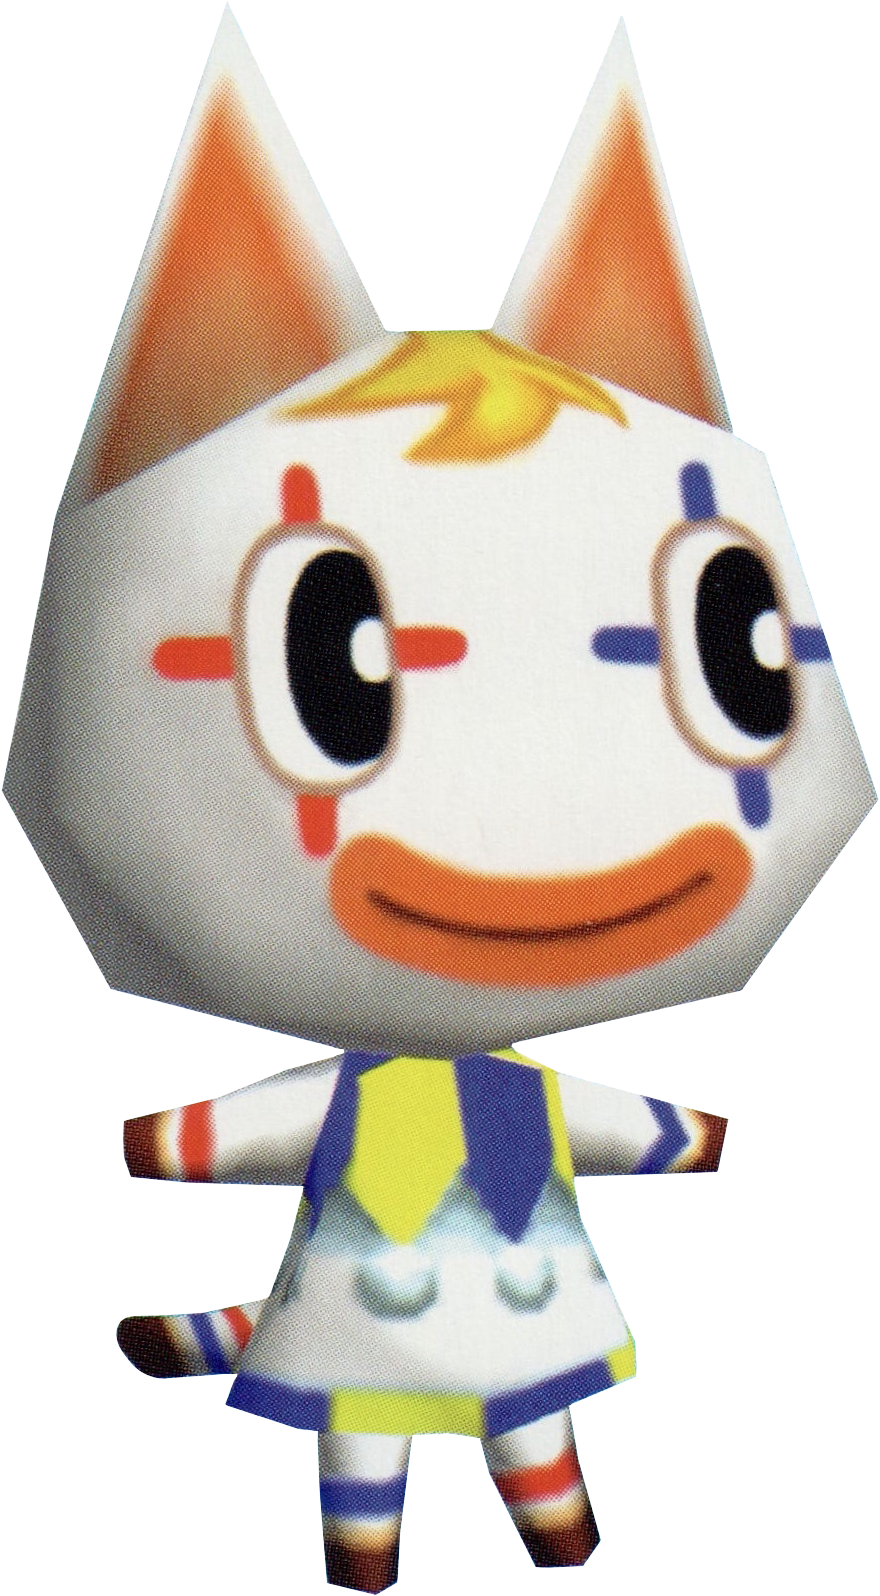 Pierre, an Animal Crossing villager.